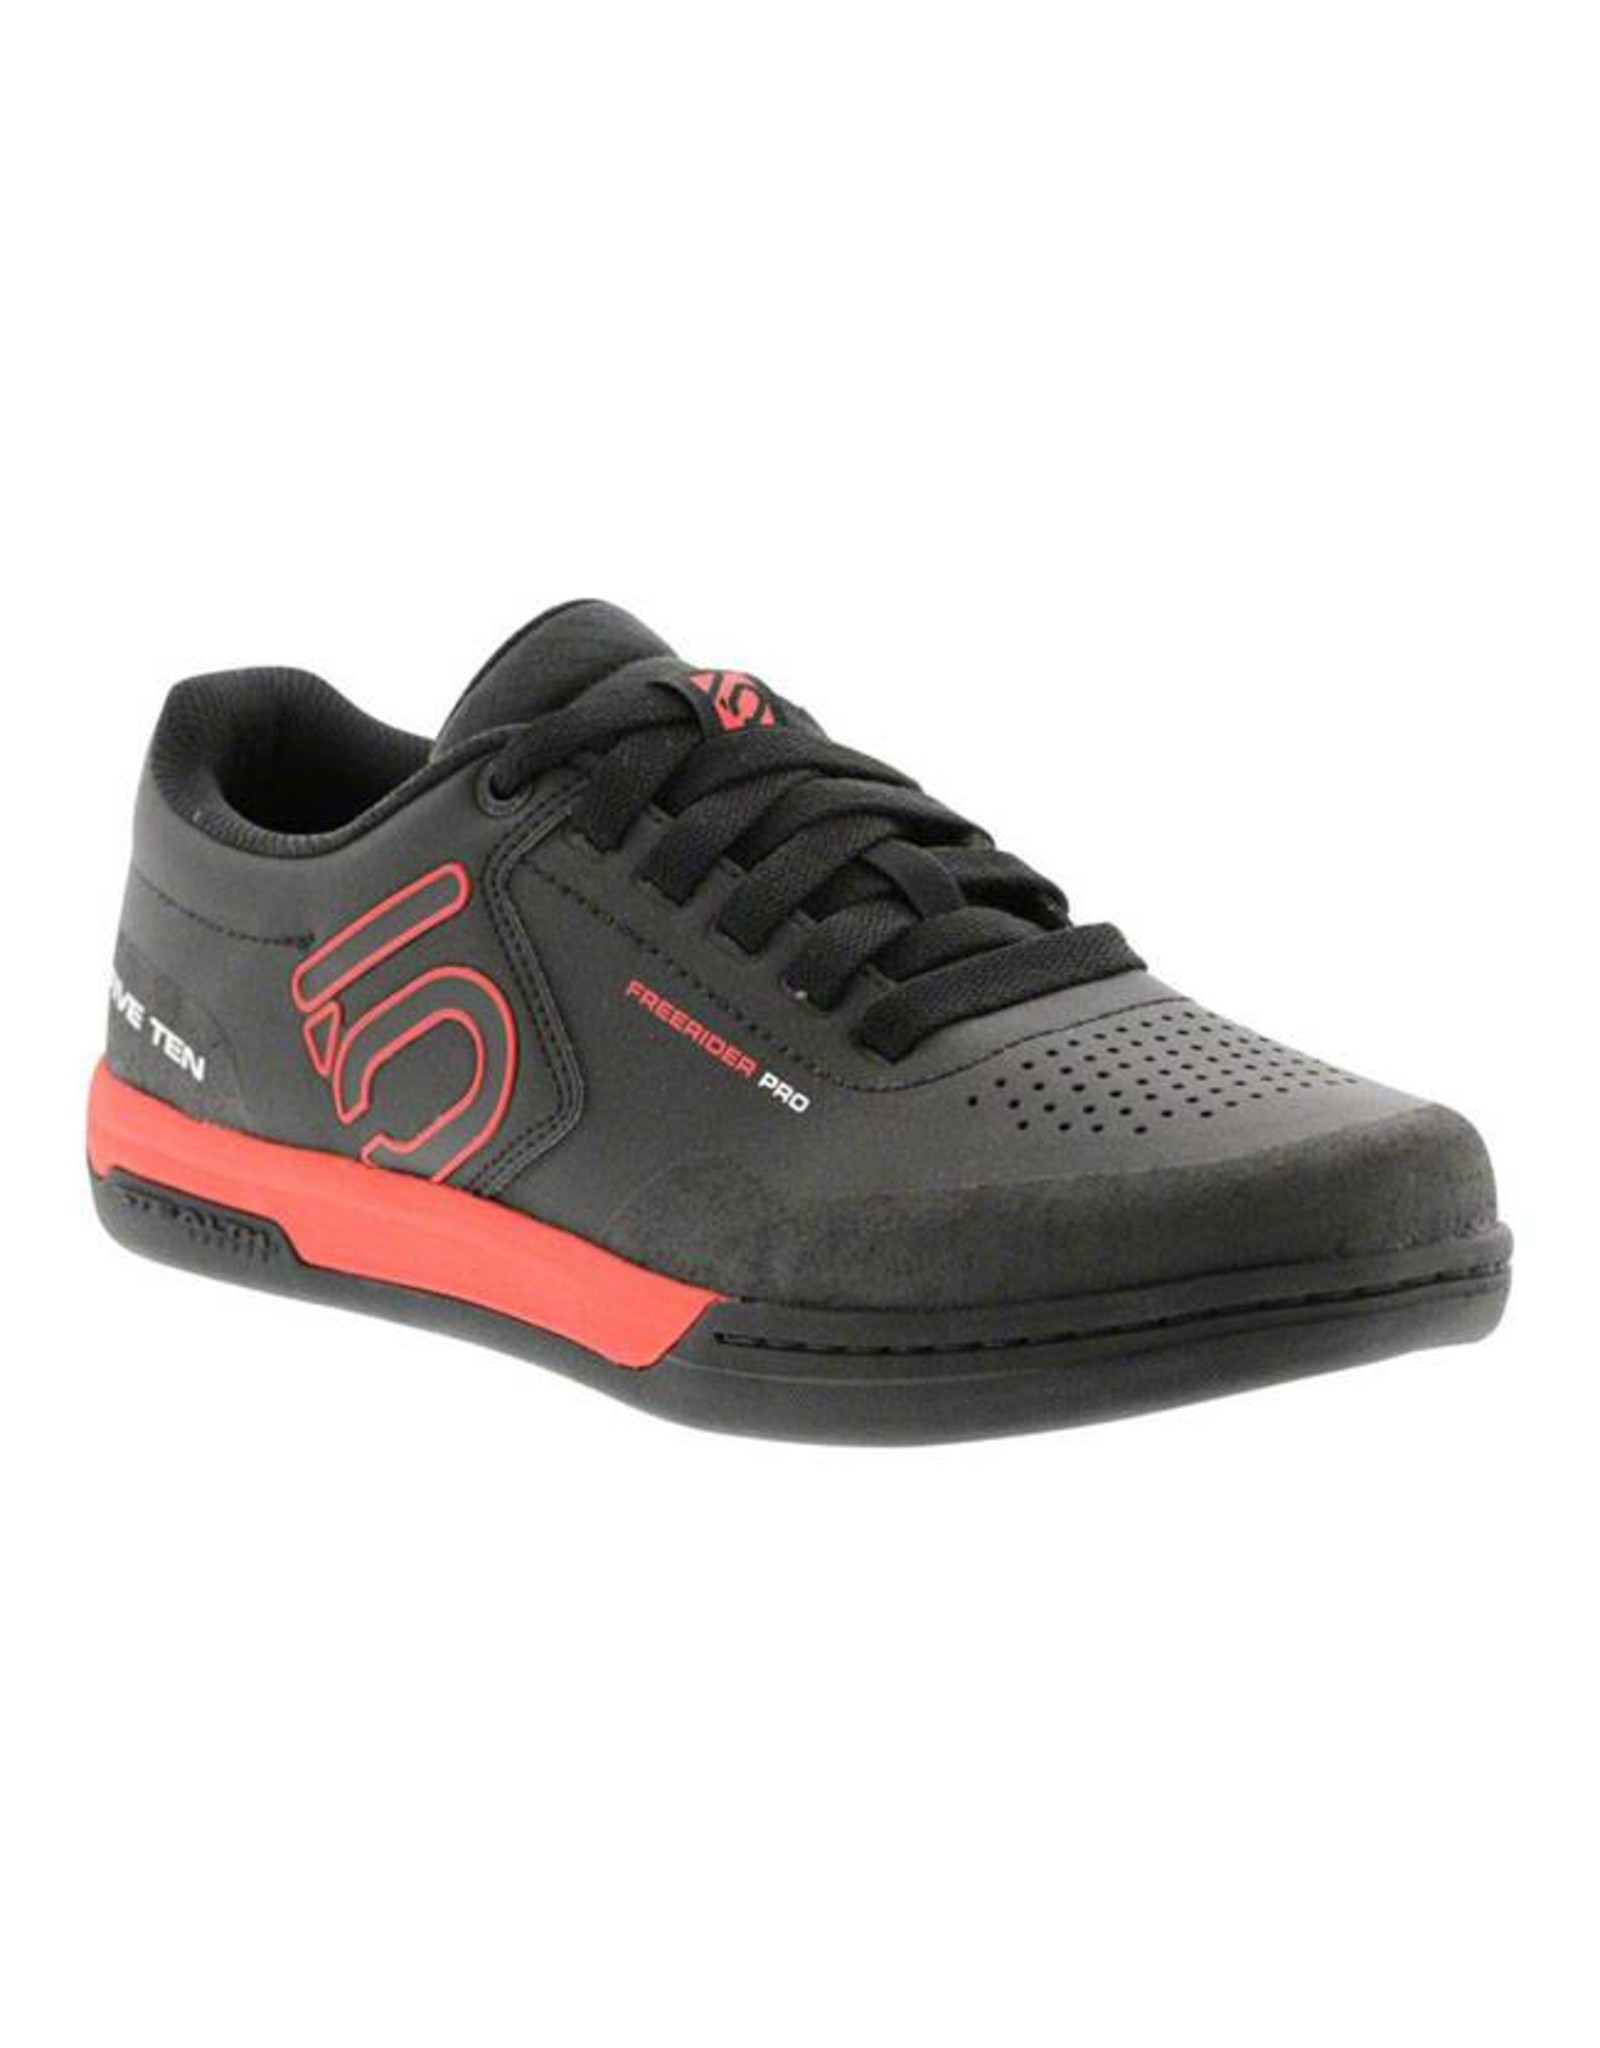 Five Ten Five Ten Freerider Pro Men's Flat Pedal Shoe: Black 11.5